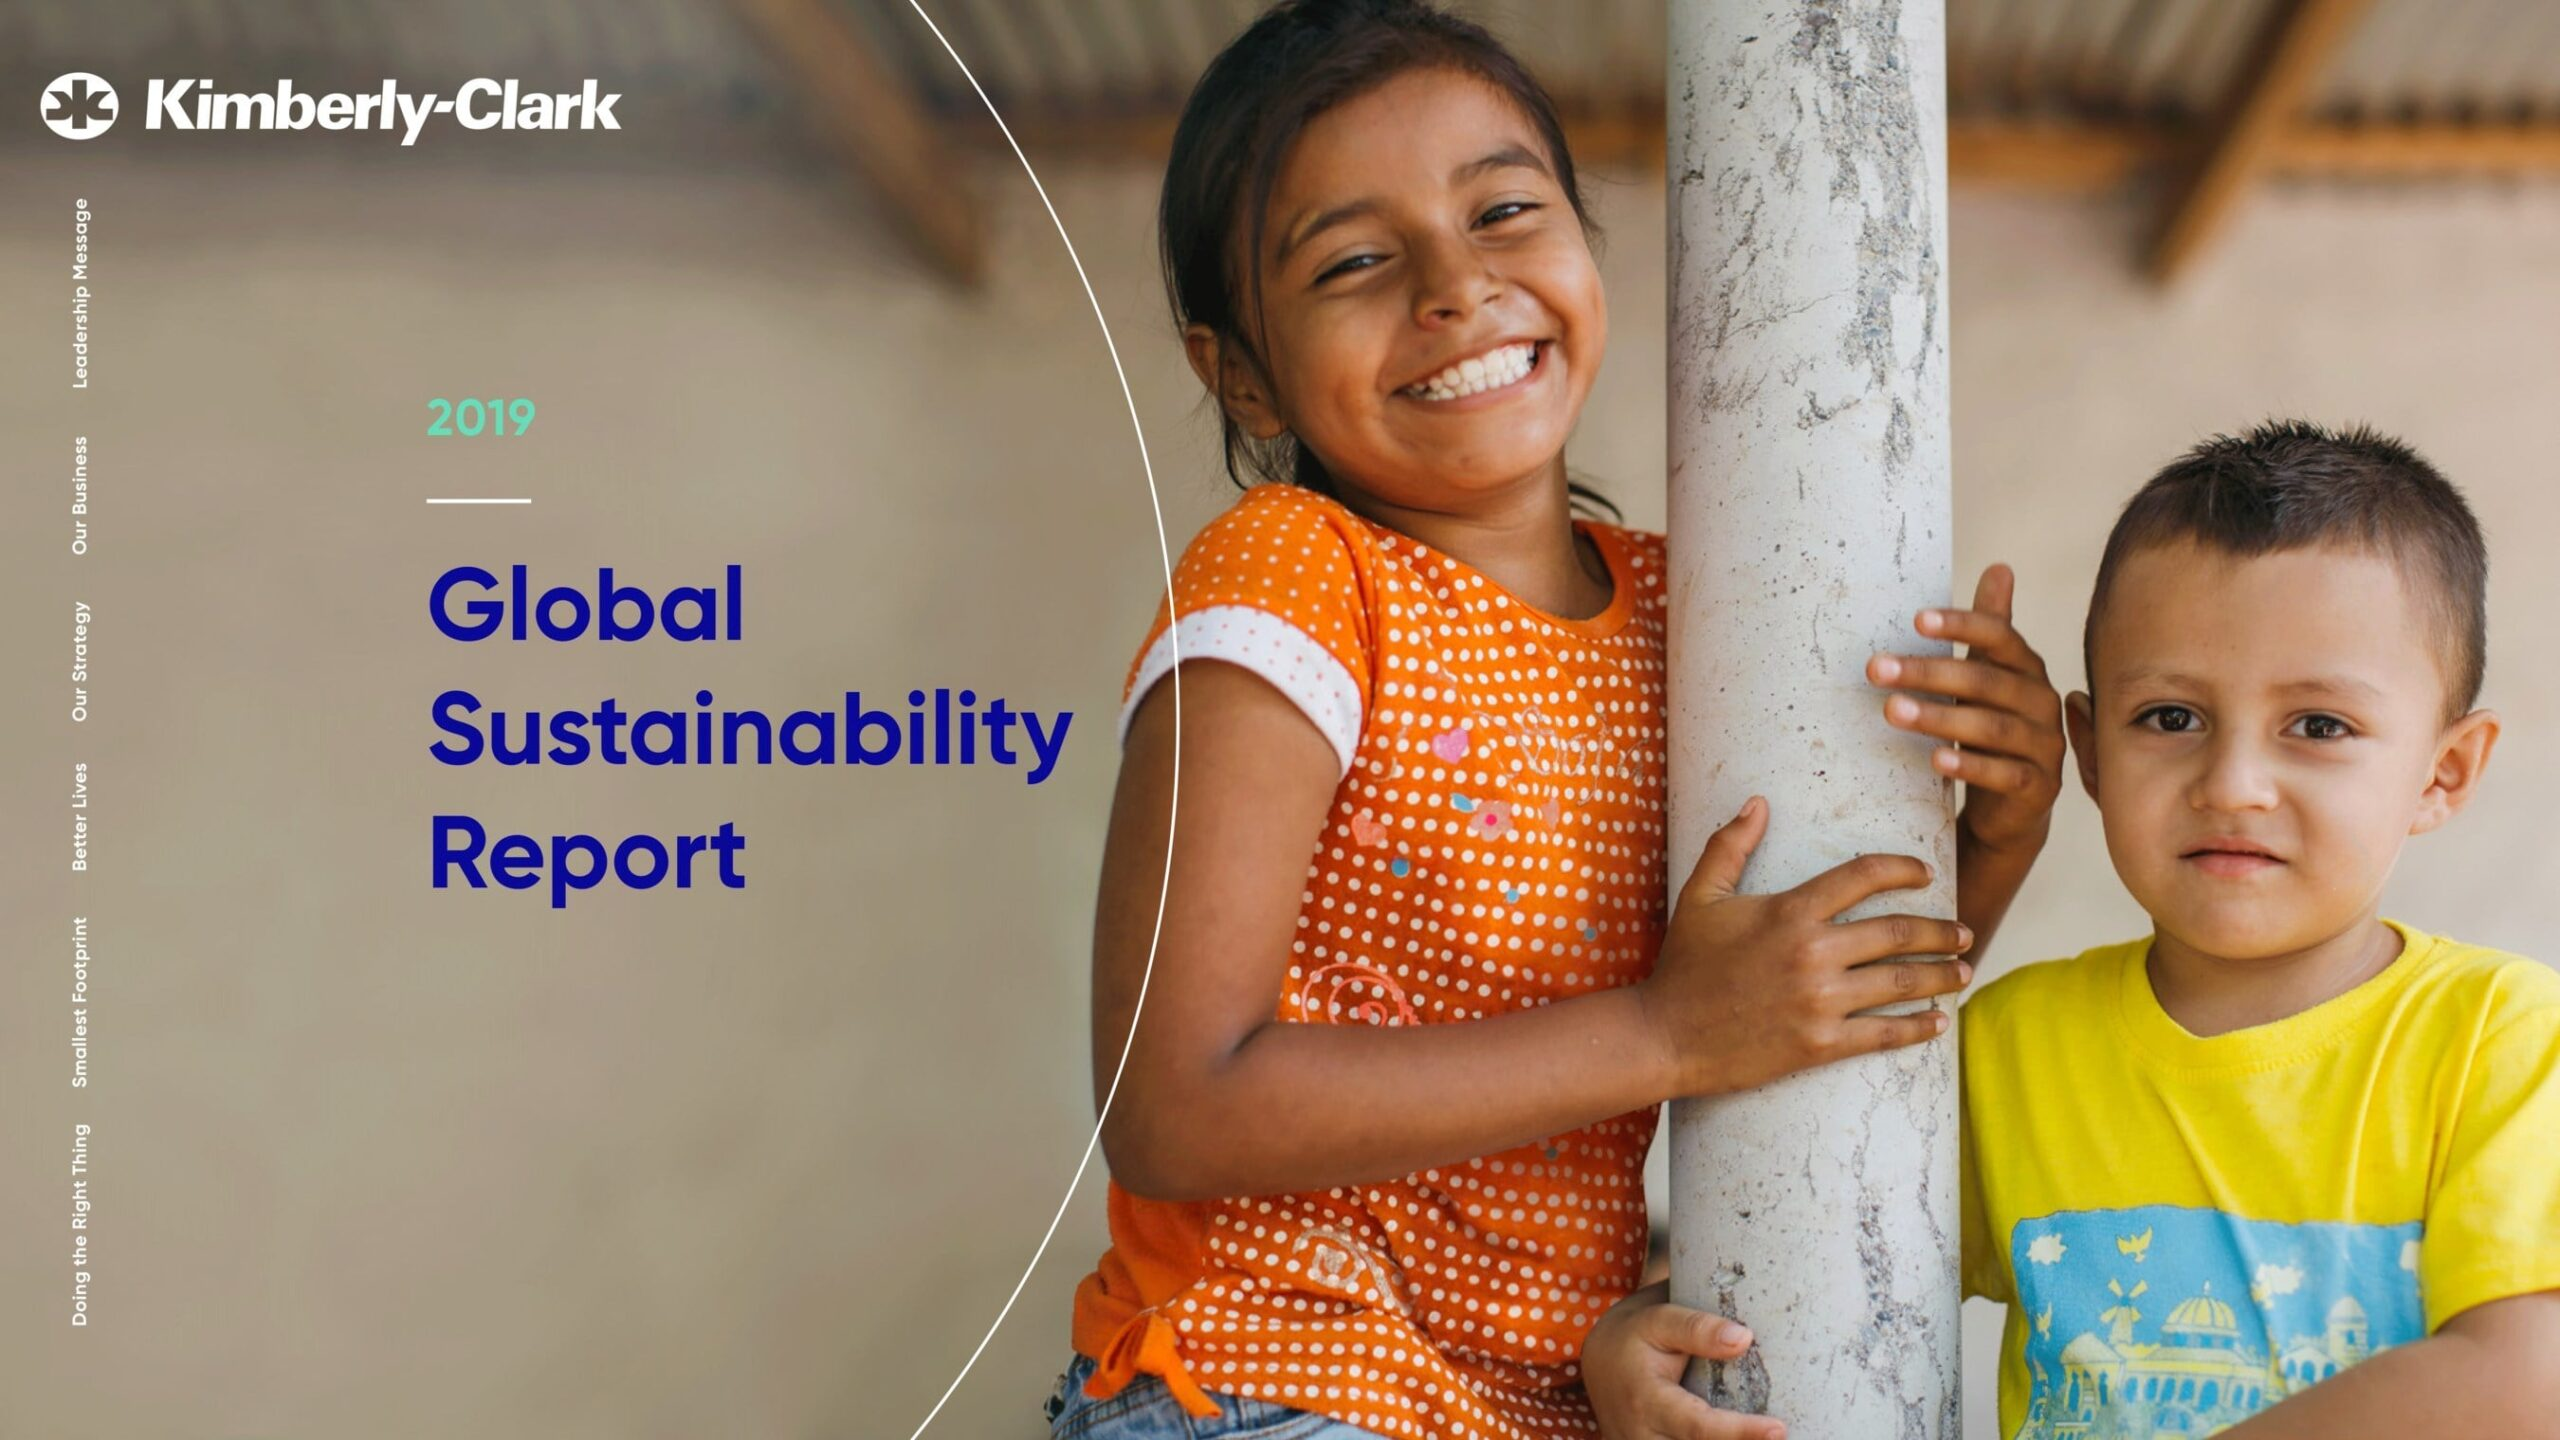 Kimberly-Clark announces sustainability strategy for the next decade